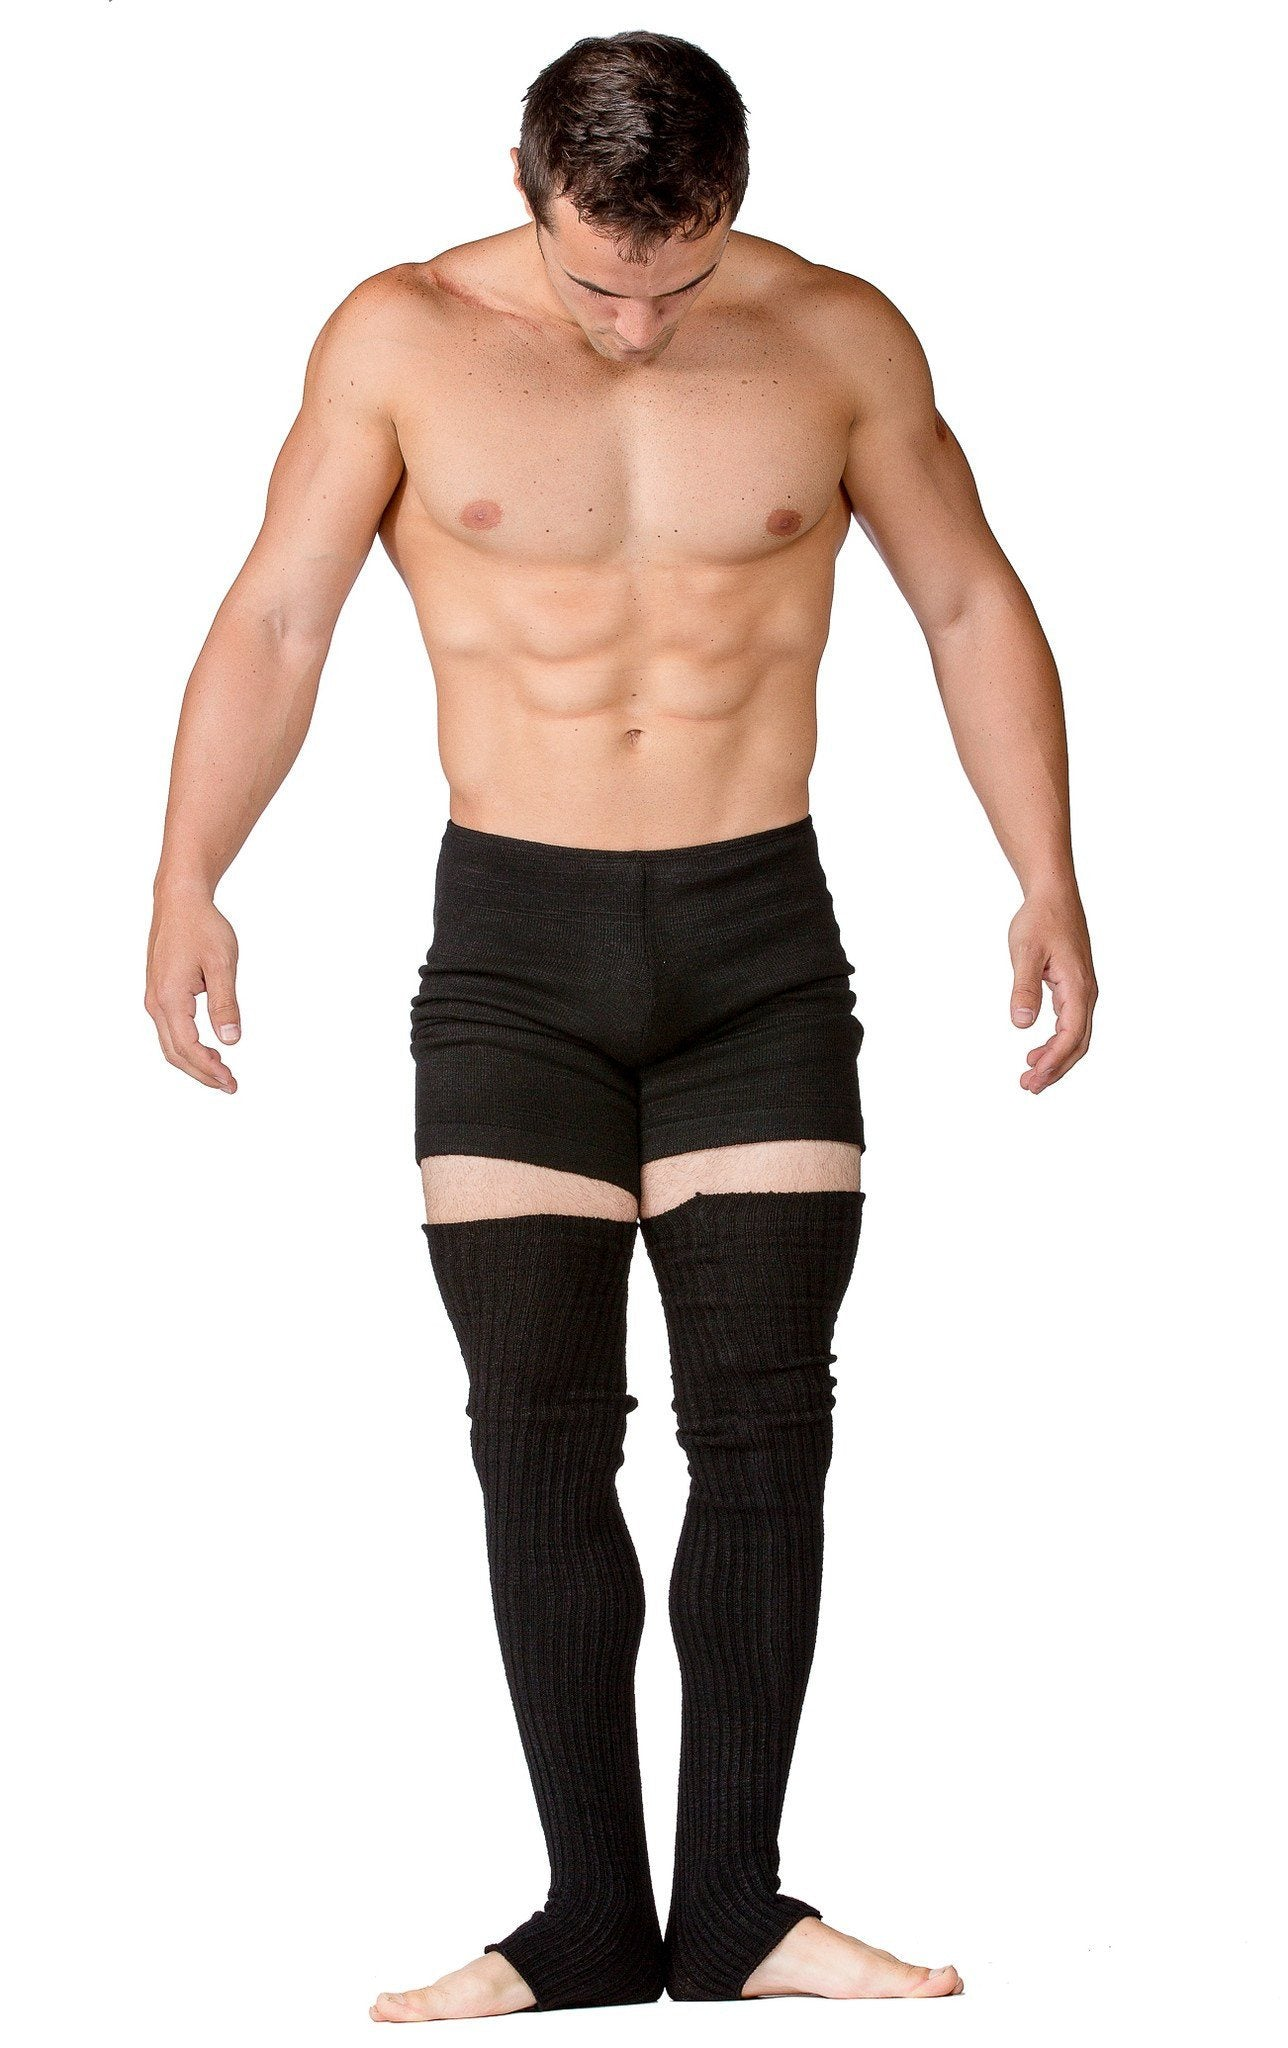 Men's Dance Shorts / Men's Dancewear @KDdanceNewYork #MadeInUSA - 4